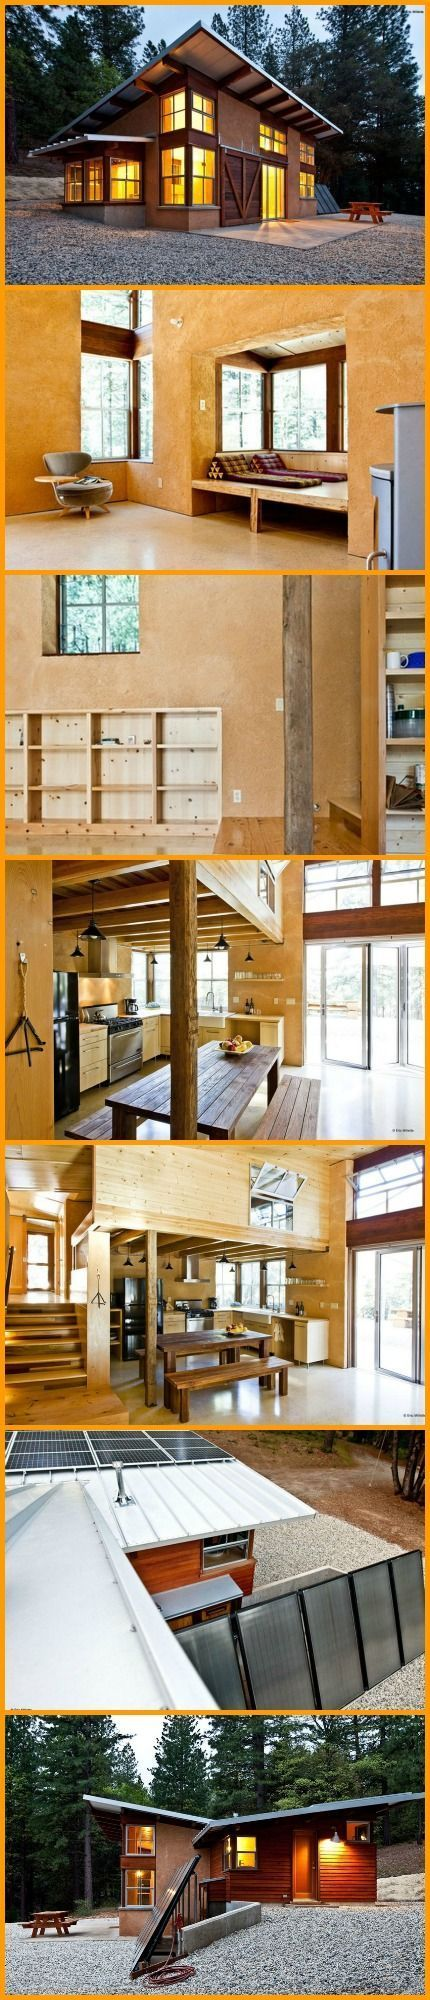 Free off the grid house plans